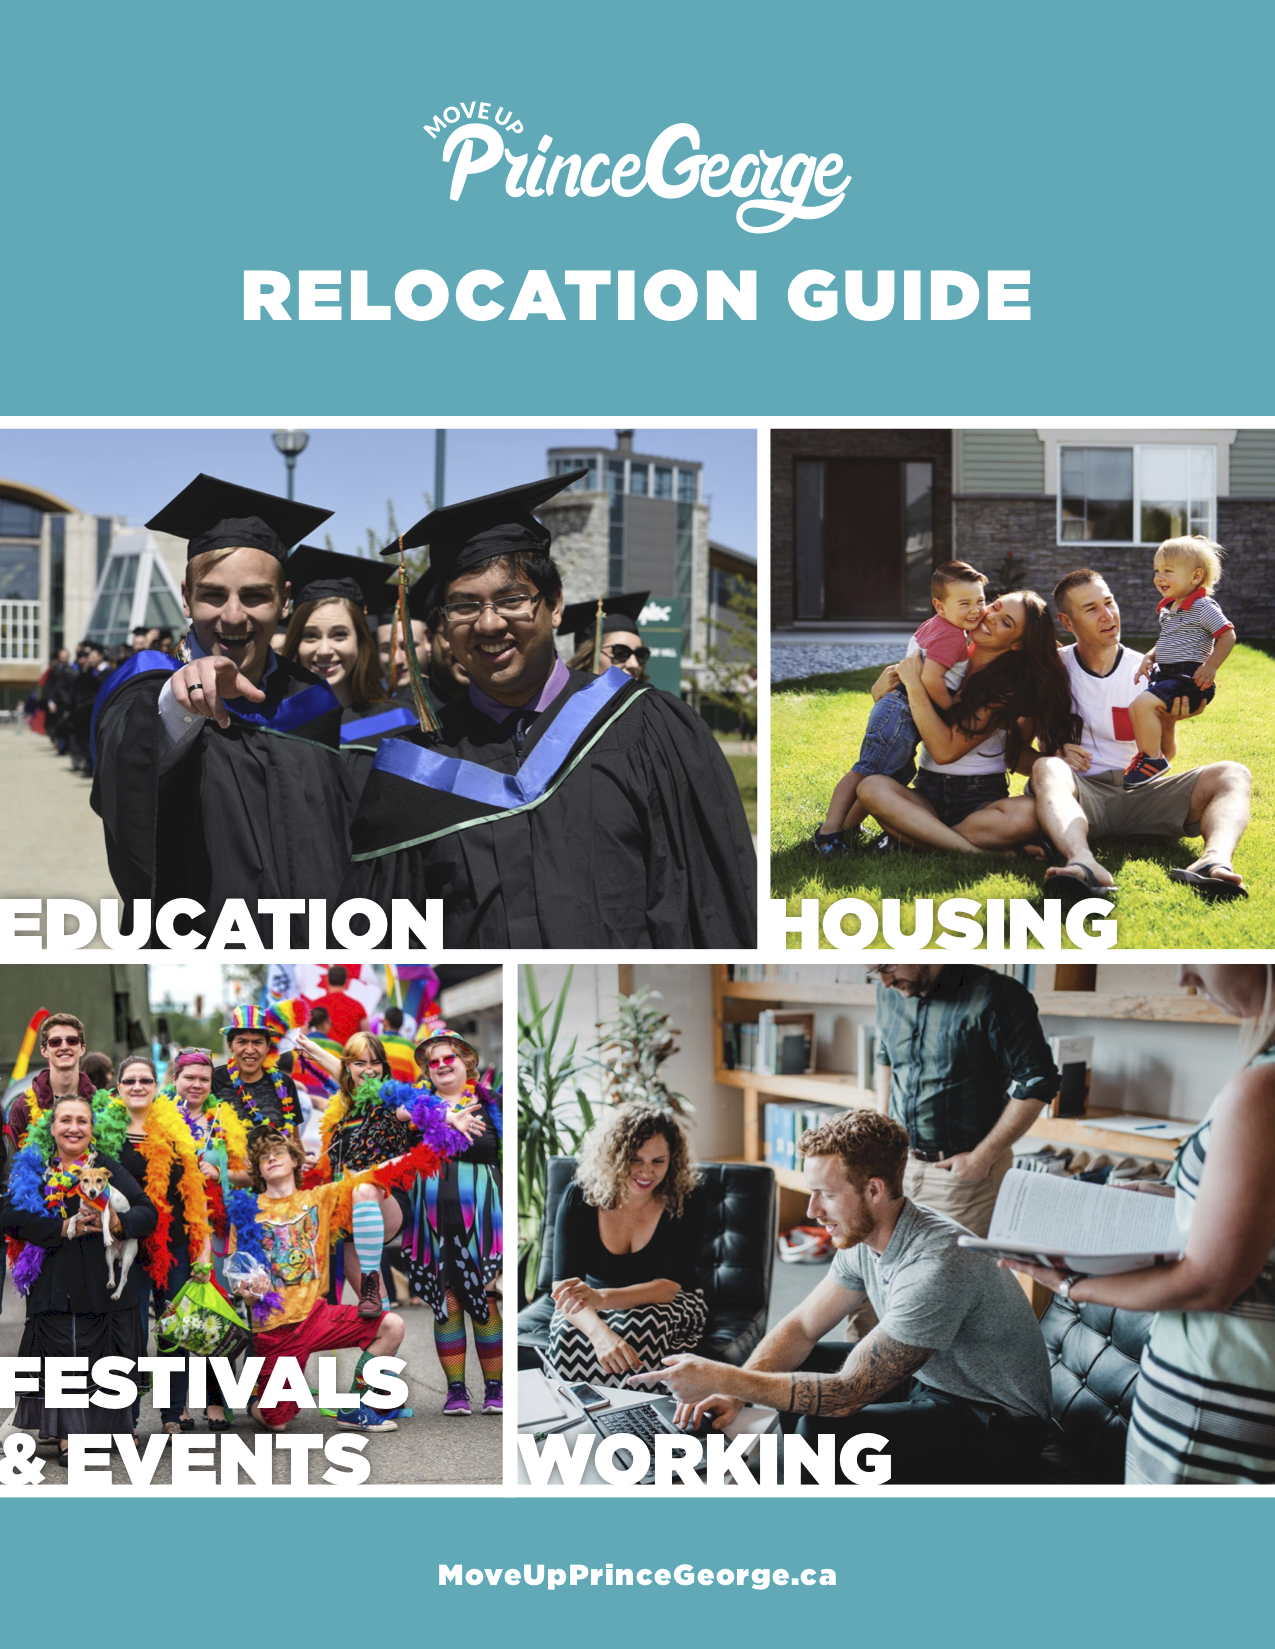 Relocation Guide Resources